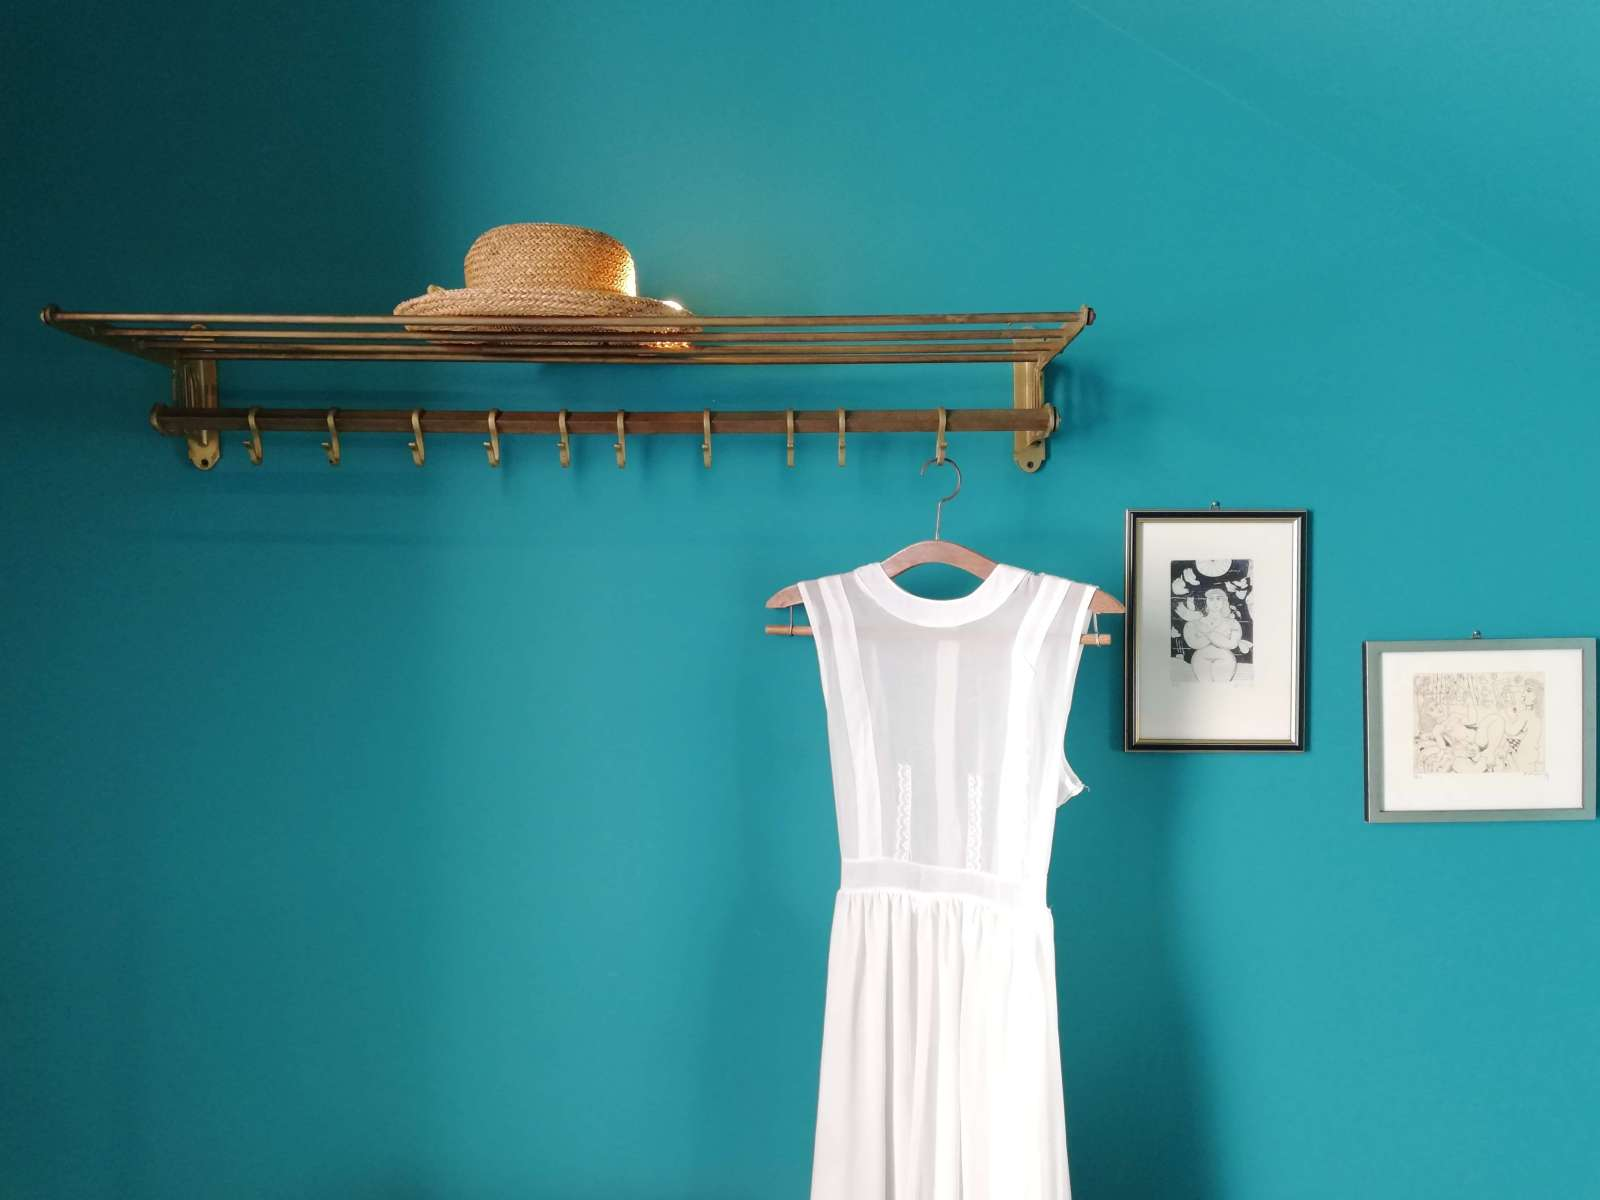 cottagecore aesthetic white dress and straw hat